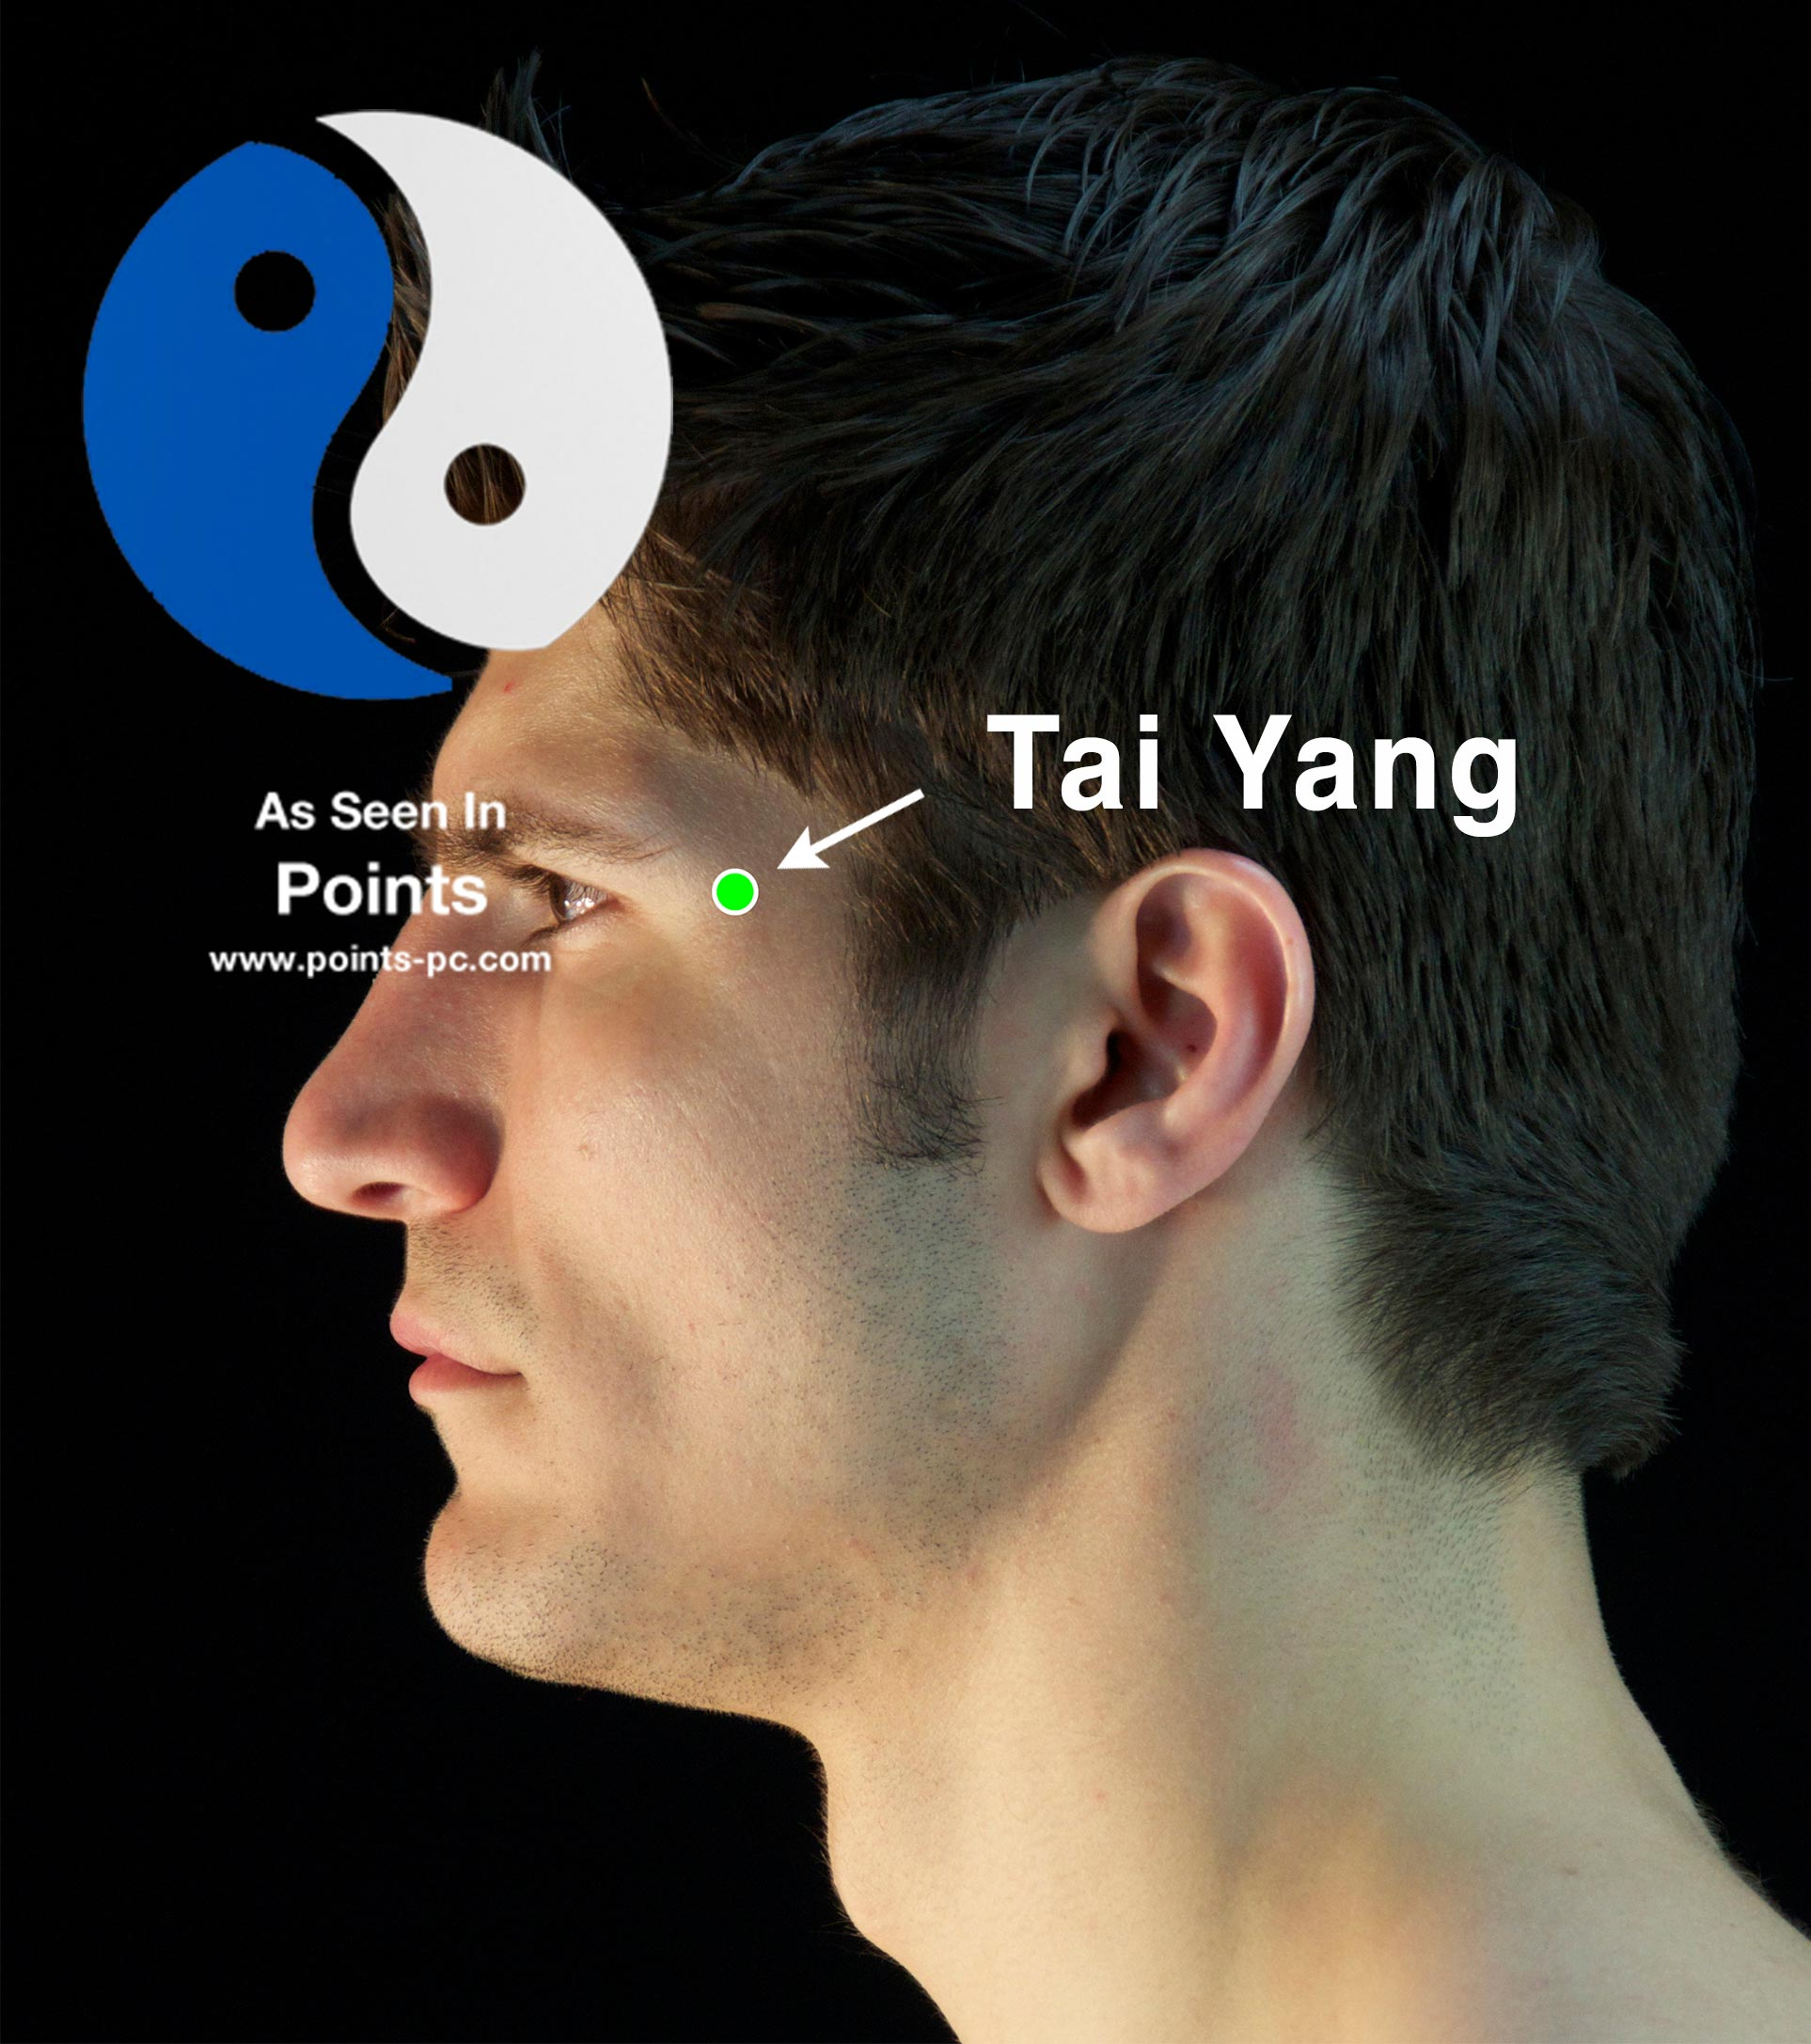 Acupuncture Point Tai Yang Acupuncture Technology News